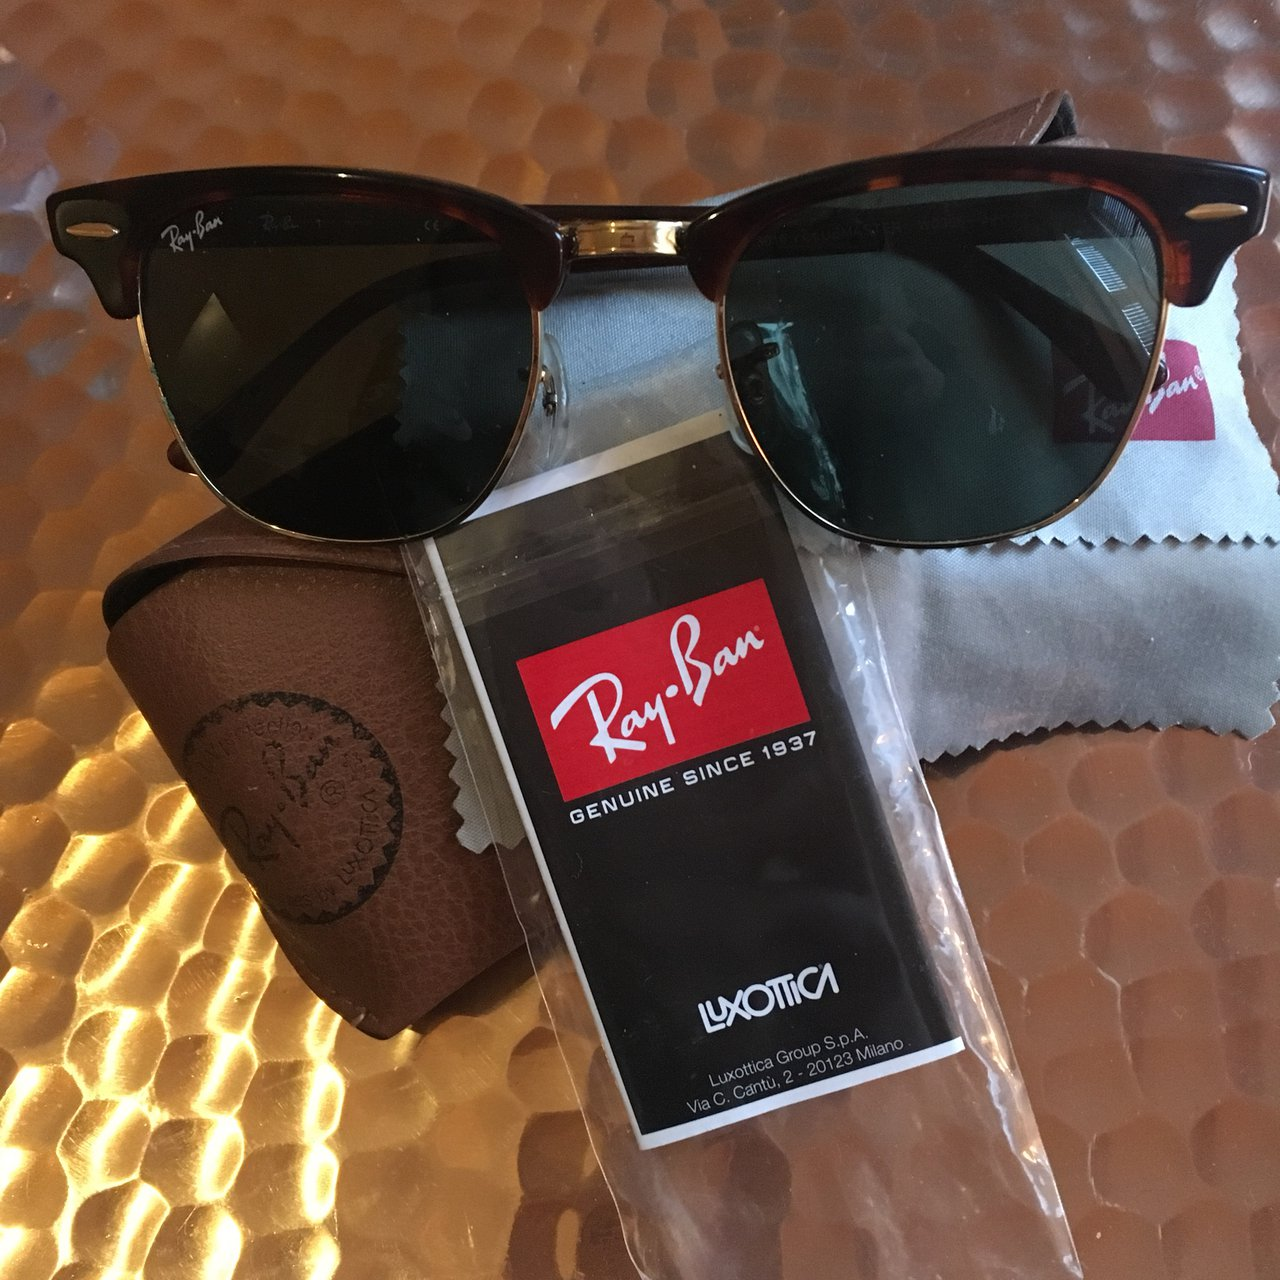 33277a2176d Original Ray Ban clubmaster sunglasses with certificate worn - Depop